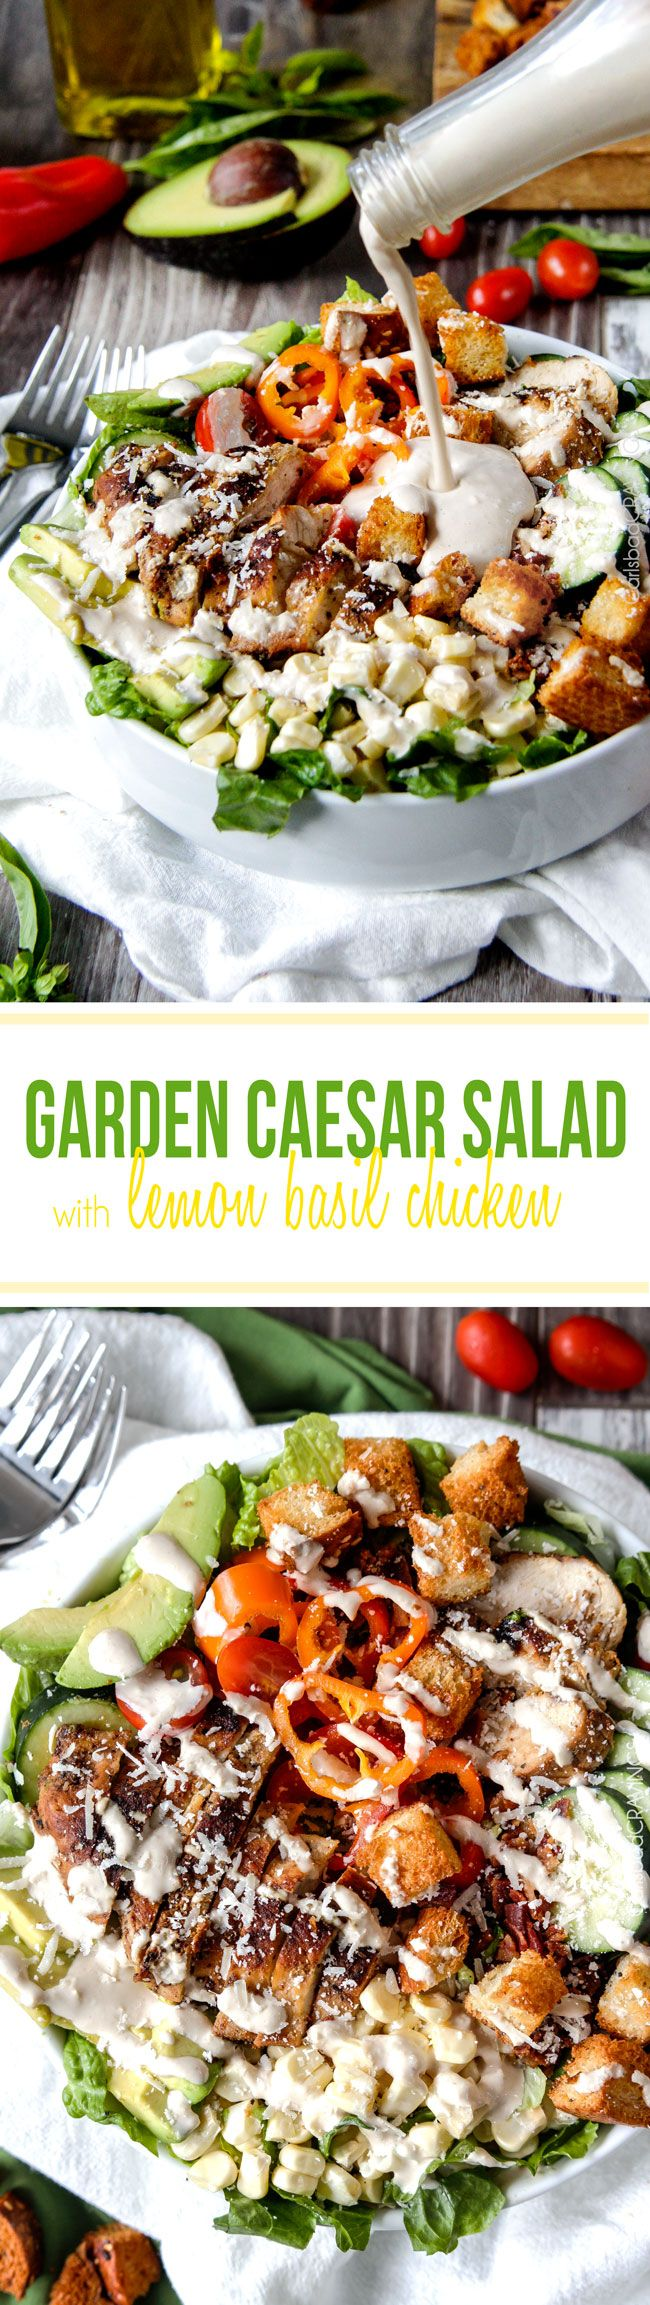 Garden Caesar Salad bursting with not only Parmesan cheese and homemade croutons but crispy bacon, fresh corn, avocados, tomatoes, cucumbers etc. and the most tender, juicy Lemon Basil Chicken all bathed in luscious WAY-better-than-store-bought Caesar Dressing. One of my favorite salads ever! #caesarsalad #gardensalad #caesardressing #lemonchicken